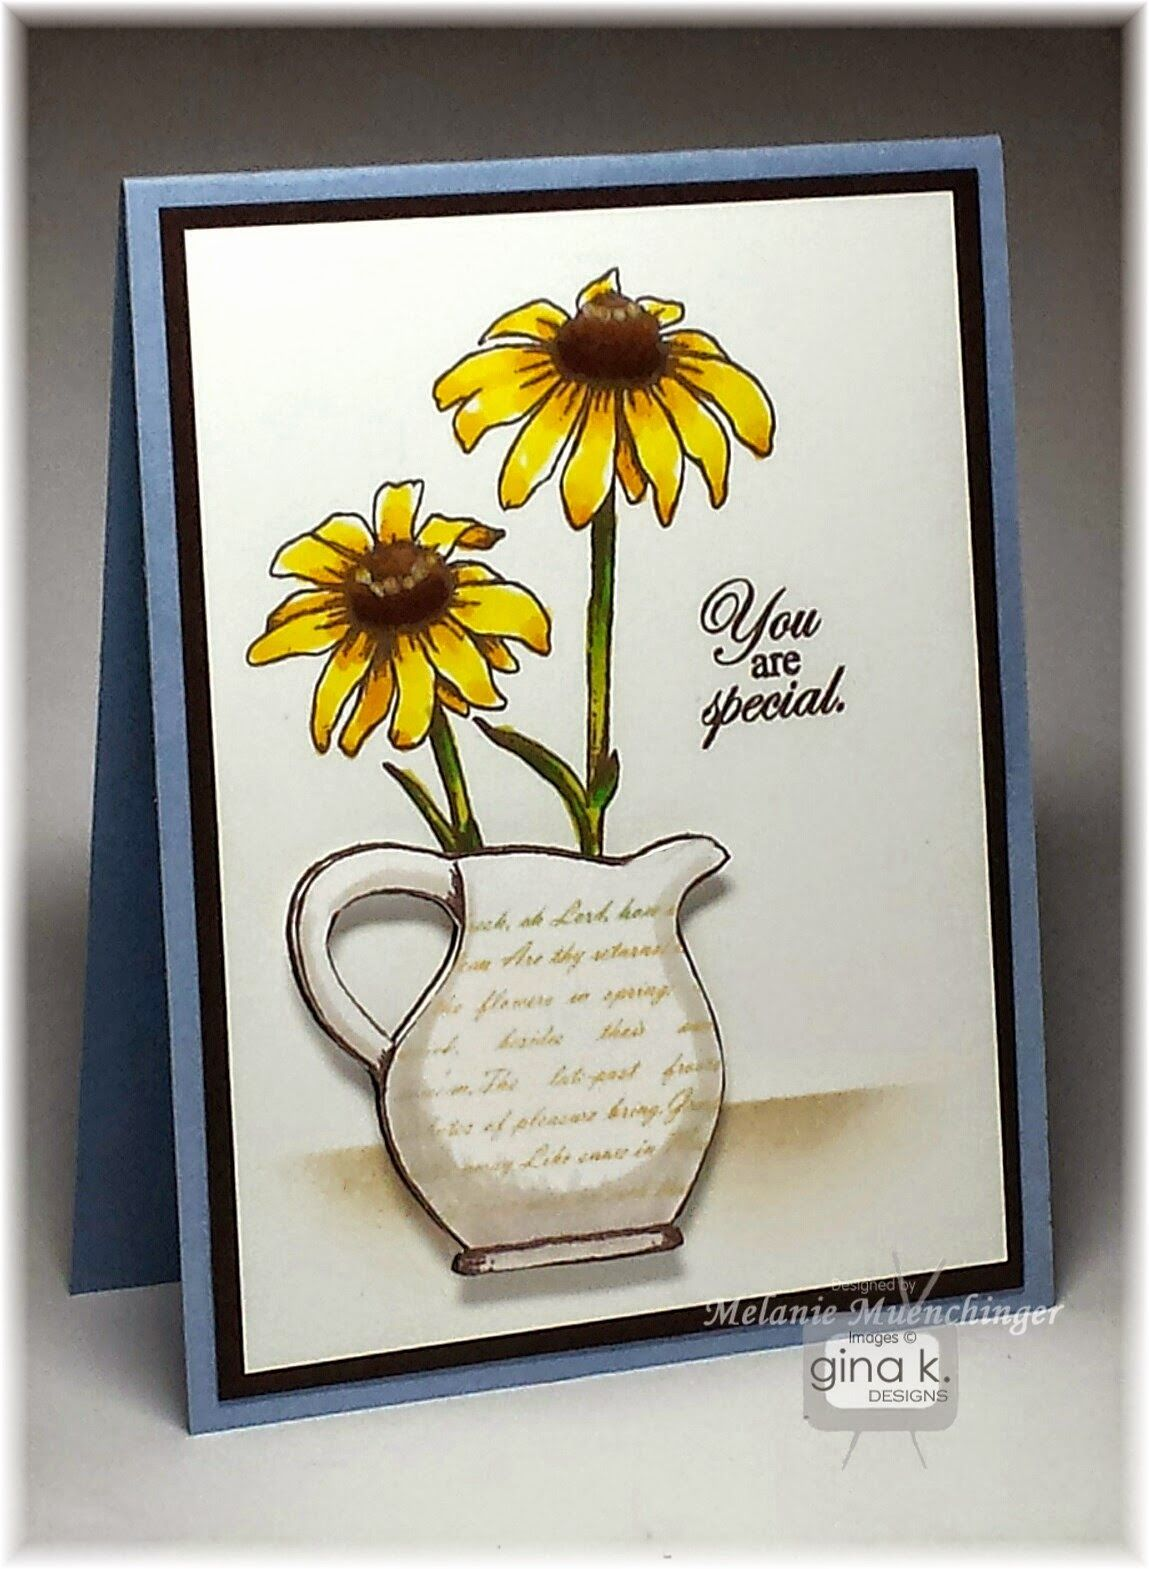 Stately Flowers 9 Stamp Set And Card By Melanie Muenchinger For Gina